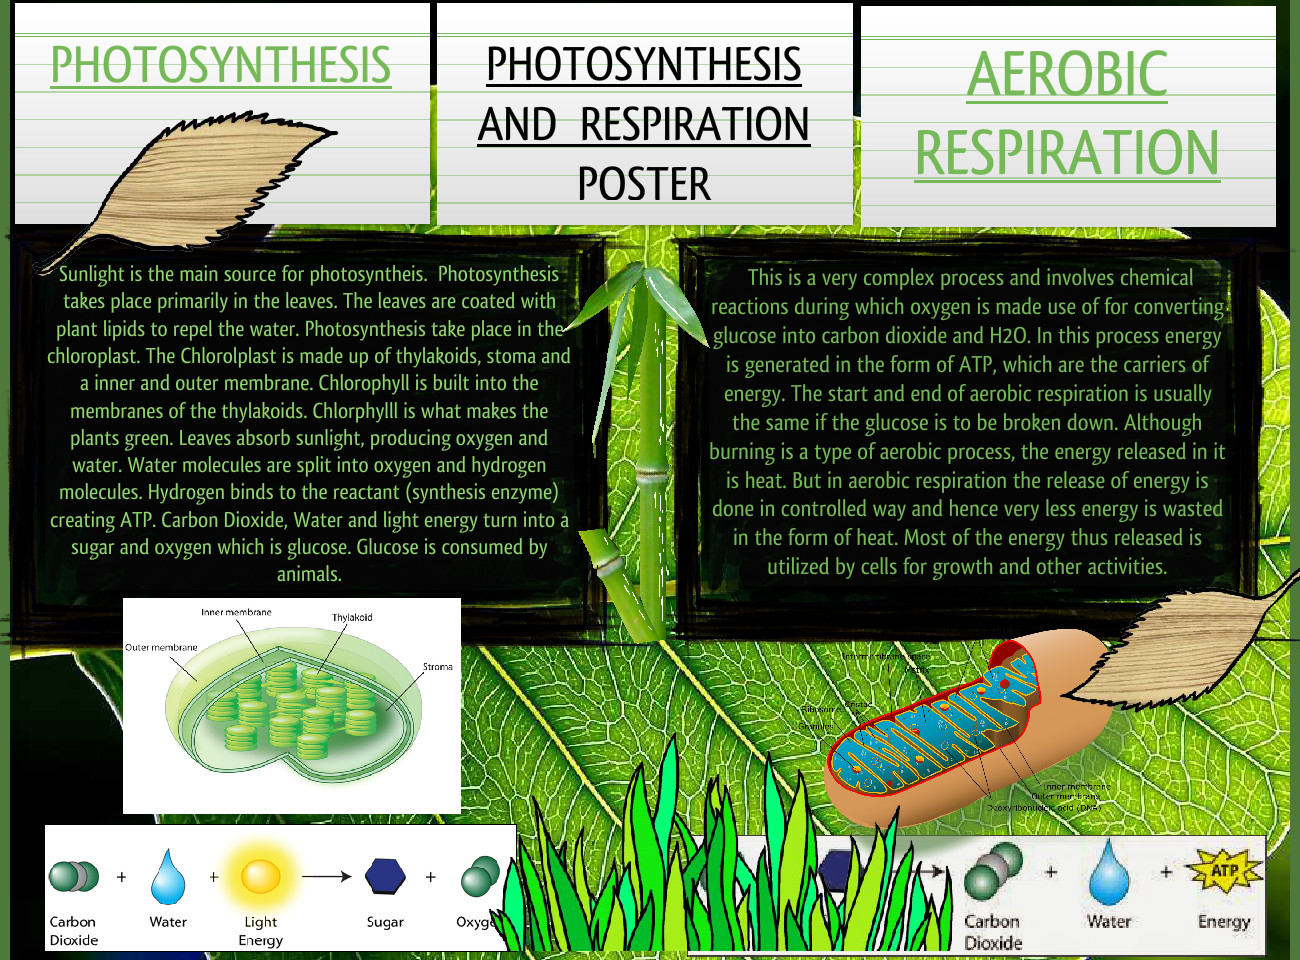 Photosynthesis and Respiration Poster